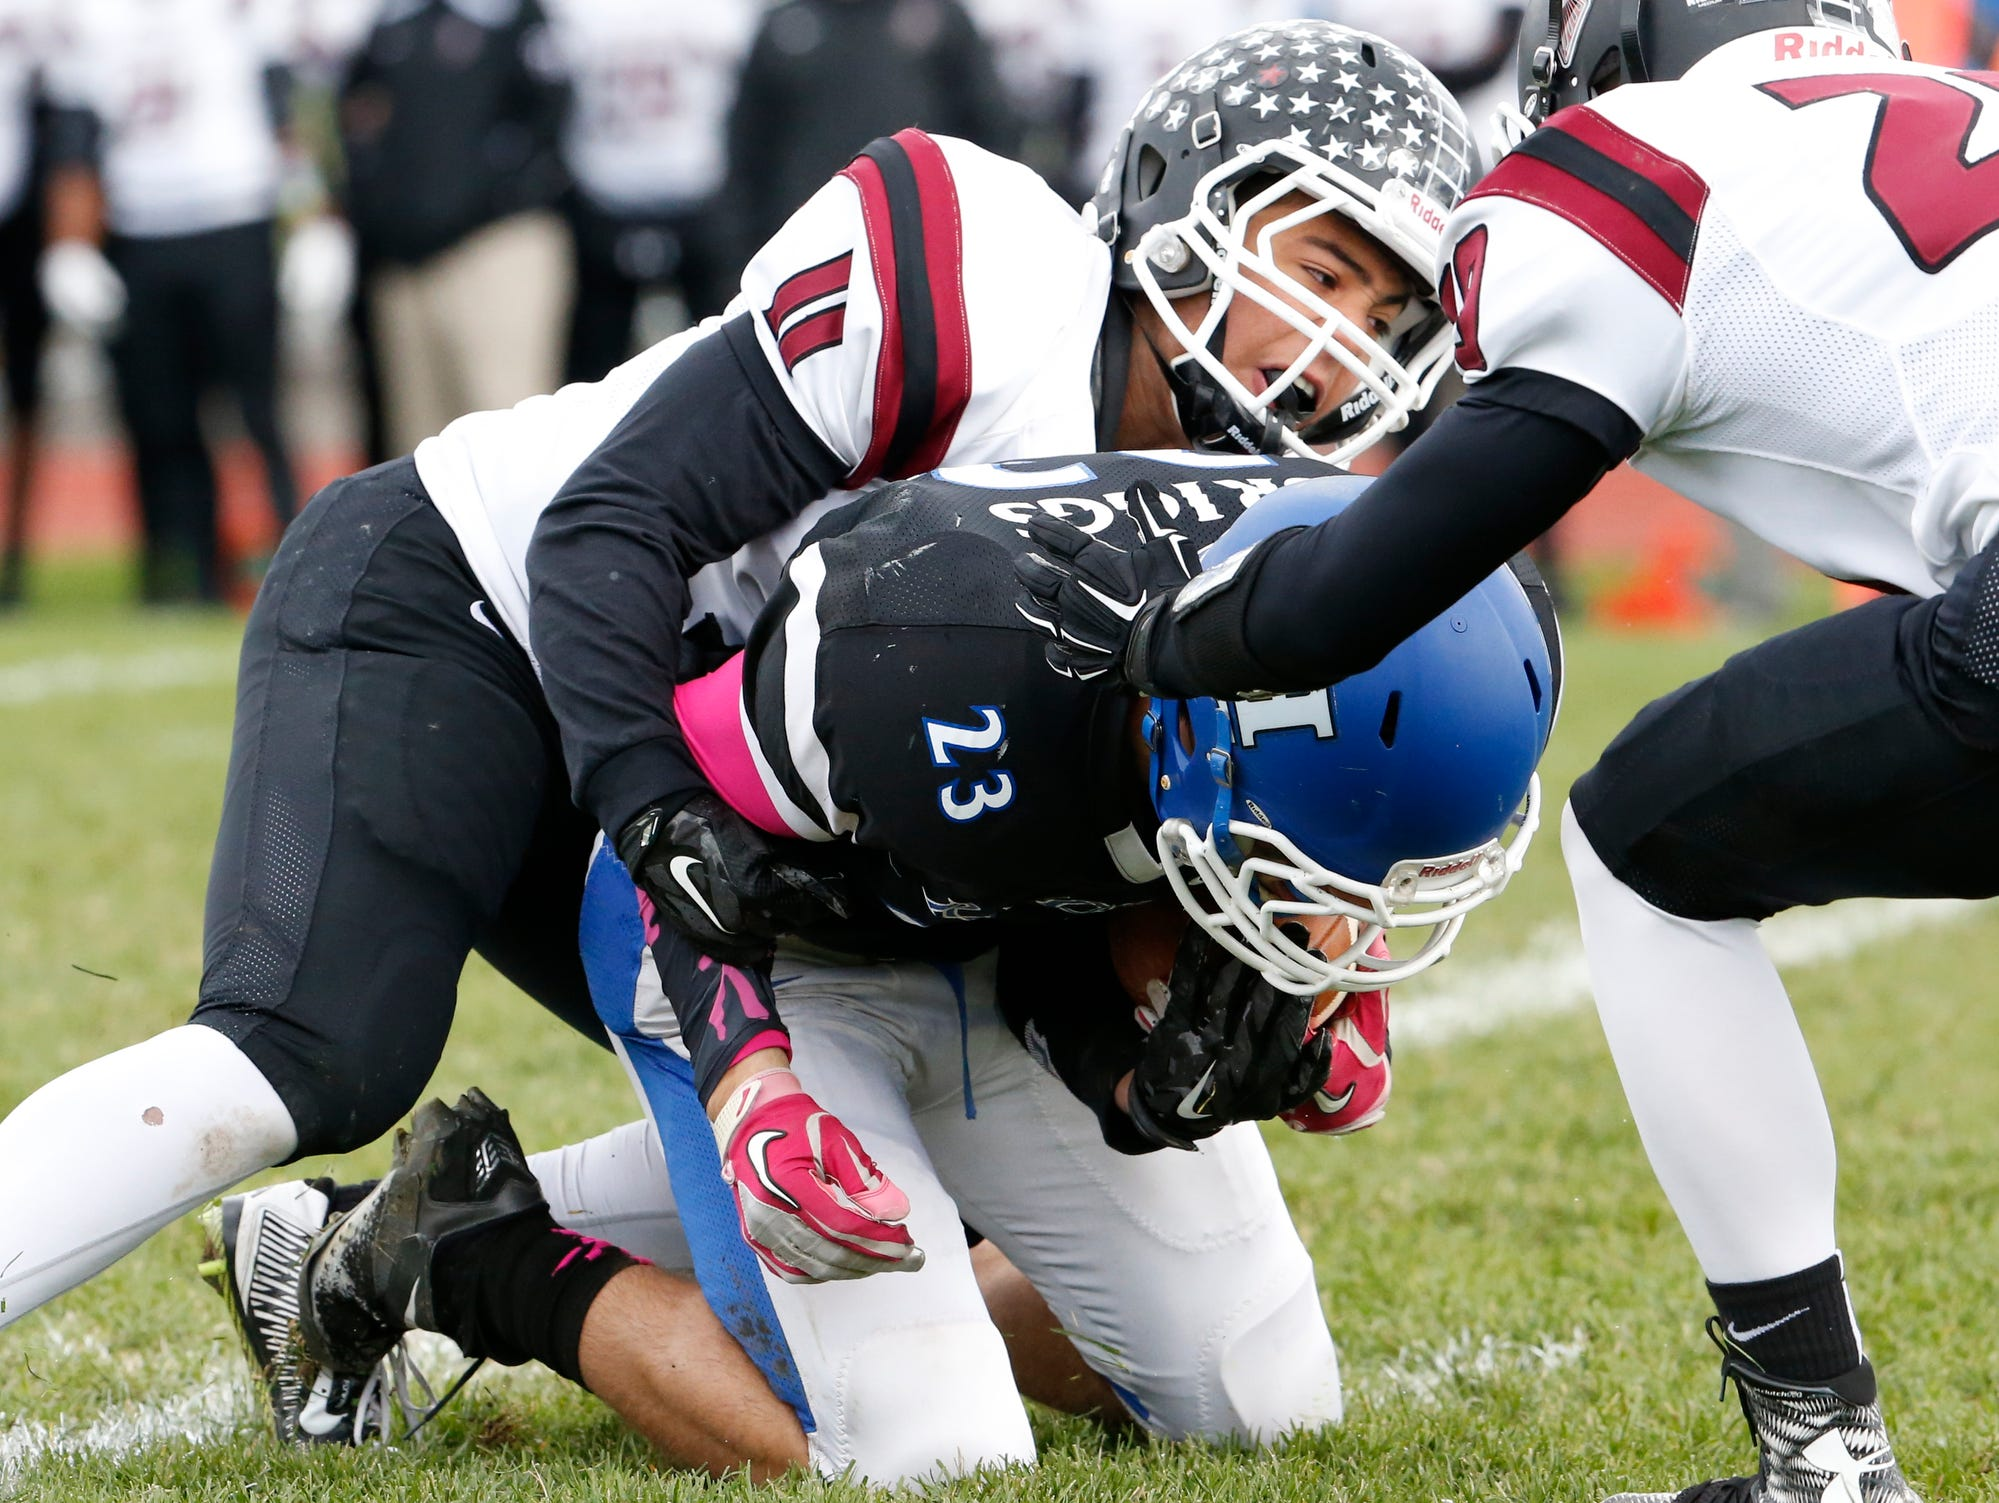 The Horseheads Blue Raiders hosted the Elmira Express Saturday.